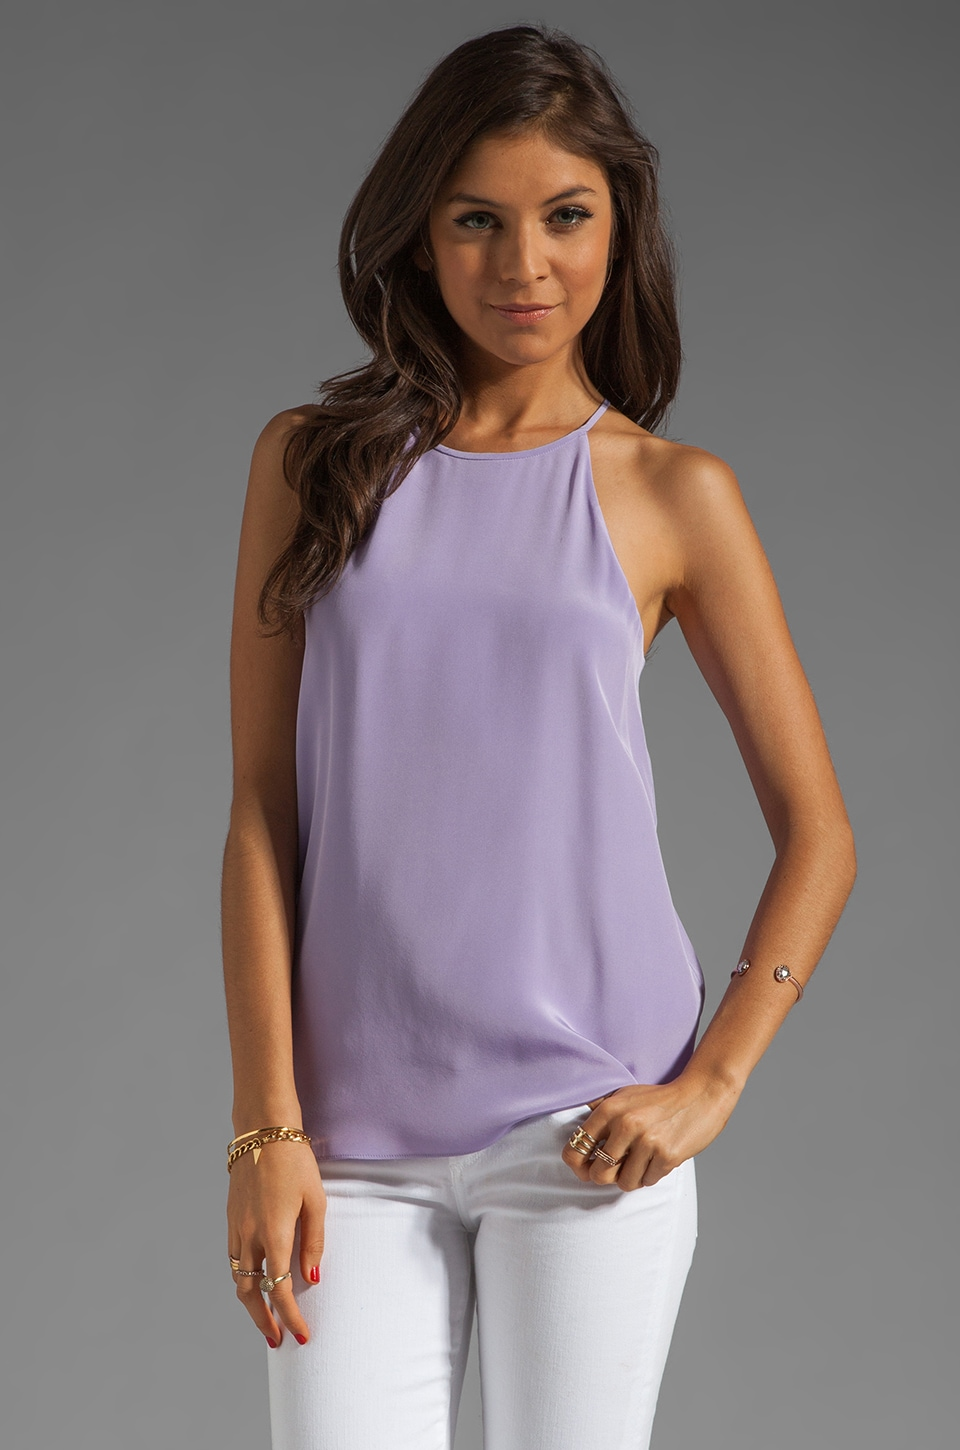 Tibi Solid Silk Halter in Dusty Lilac